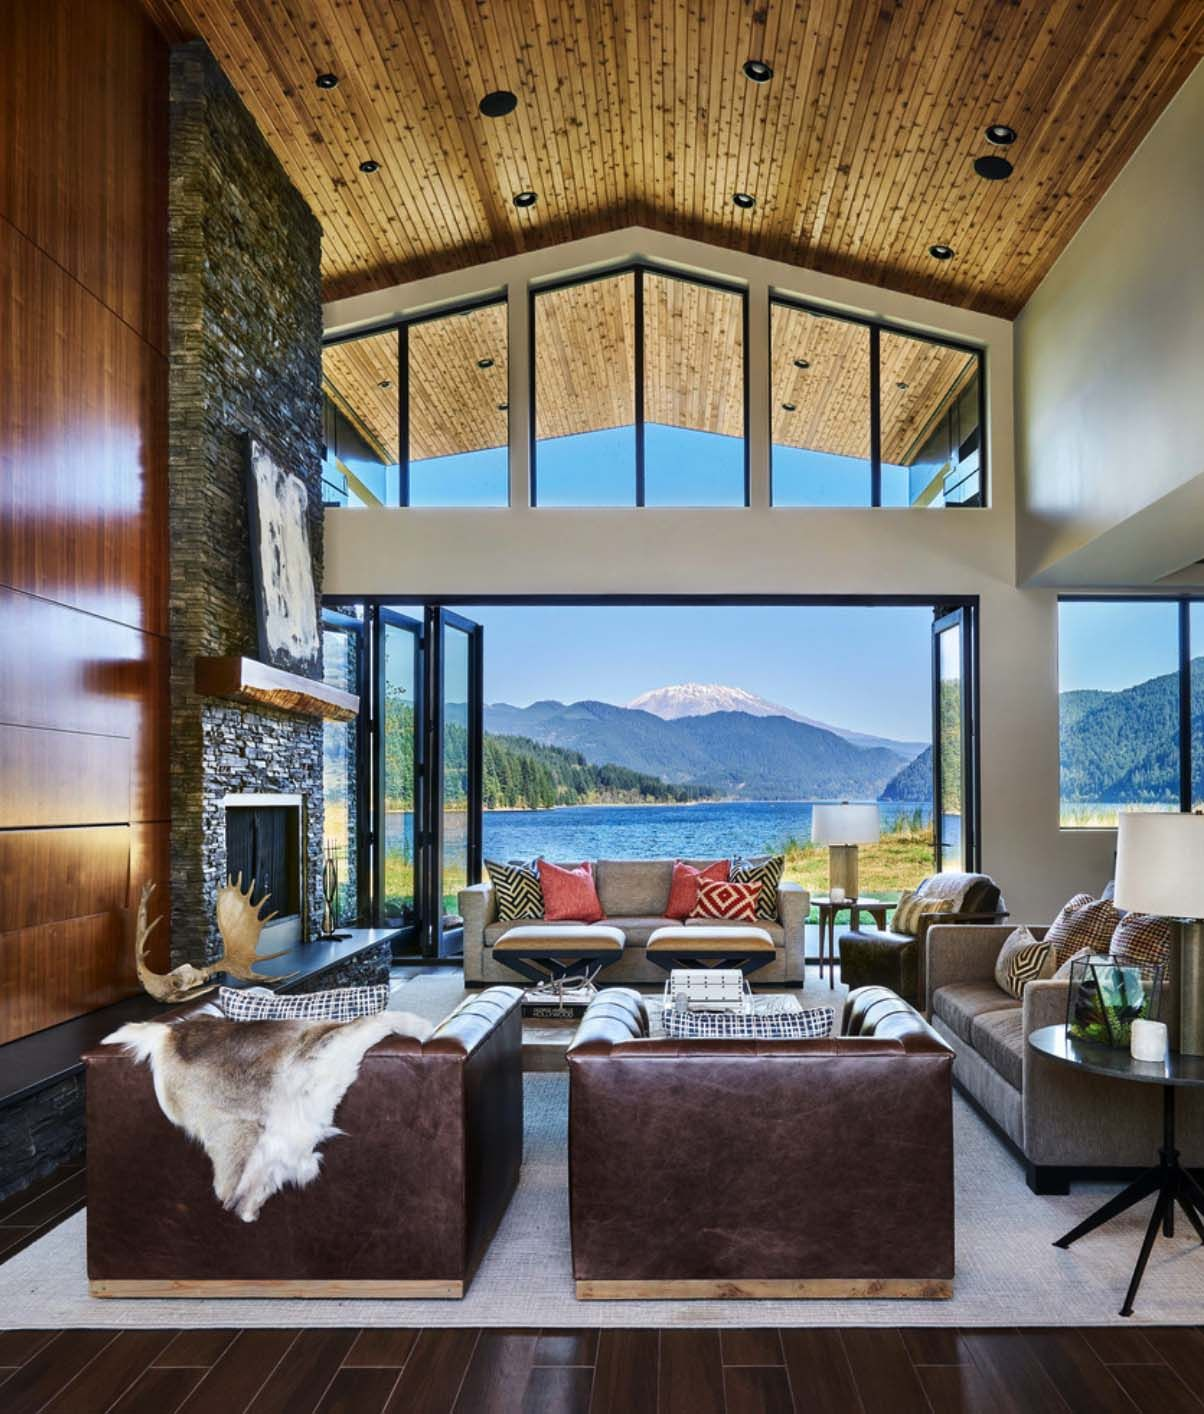 Contemporary lake house in Oregon boasts views of Mount St. Helens images